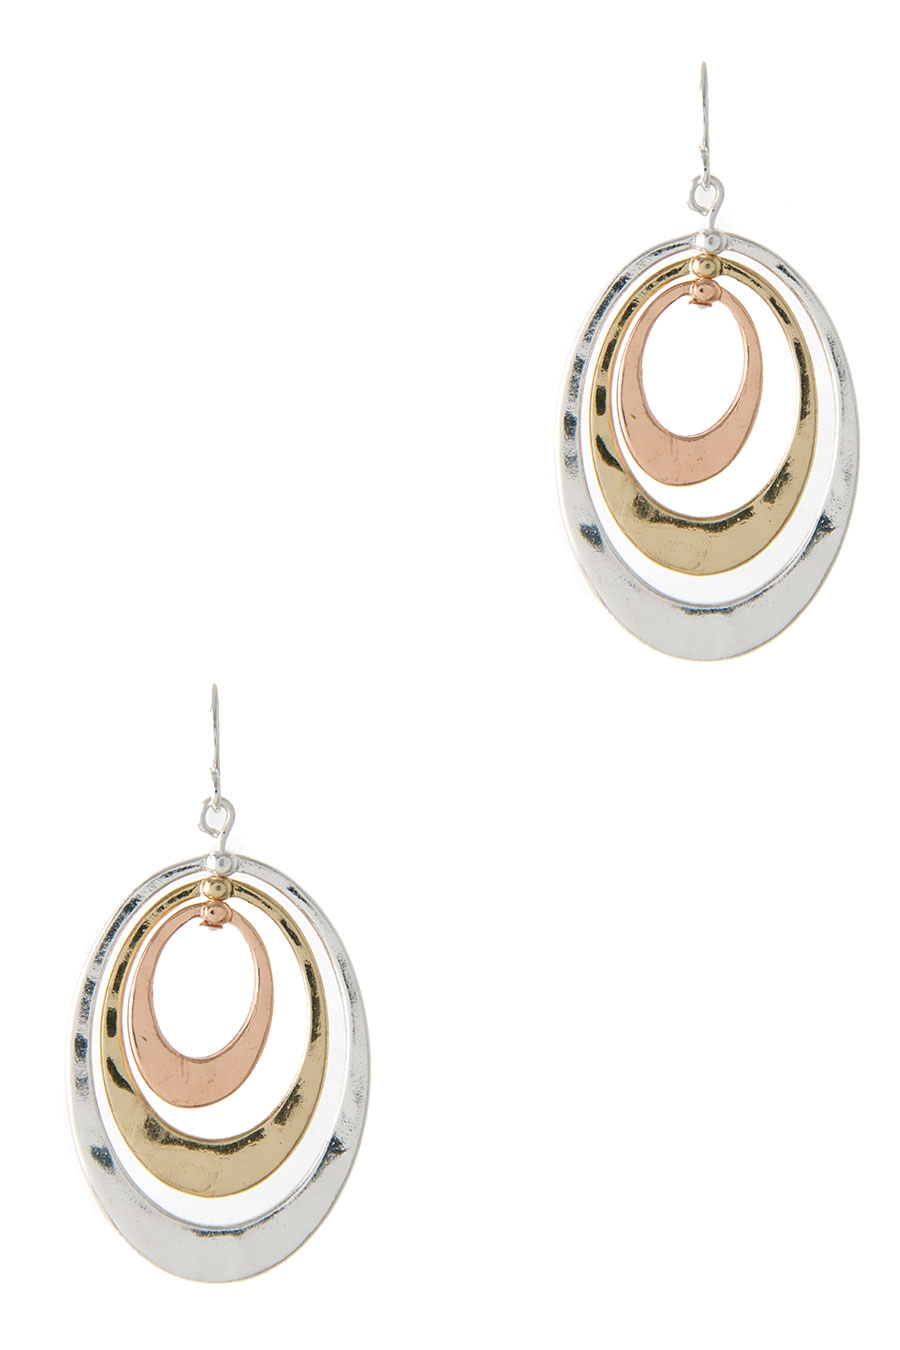 SHINY 3 OVAL DROP HOOK EARRING - orangeshine.com